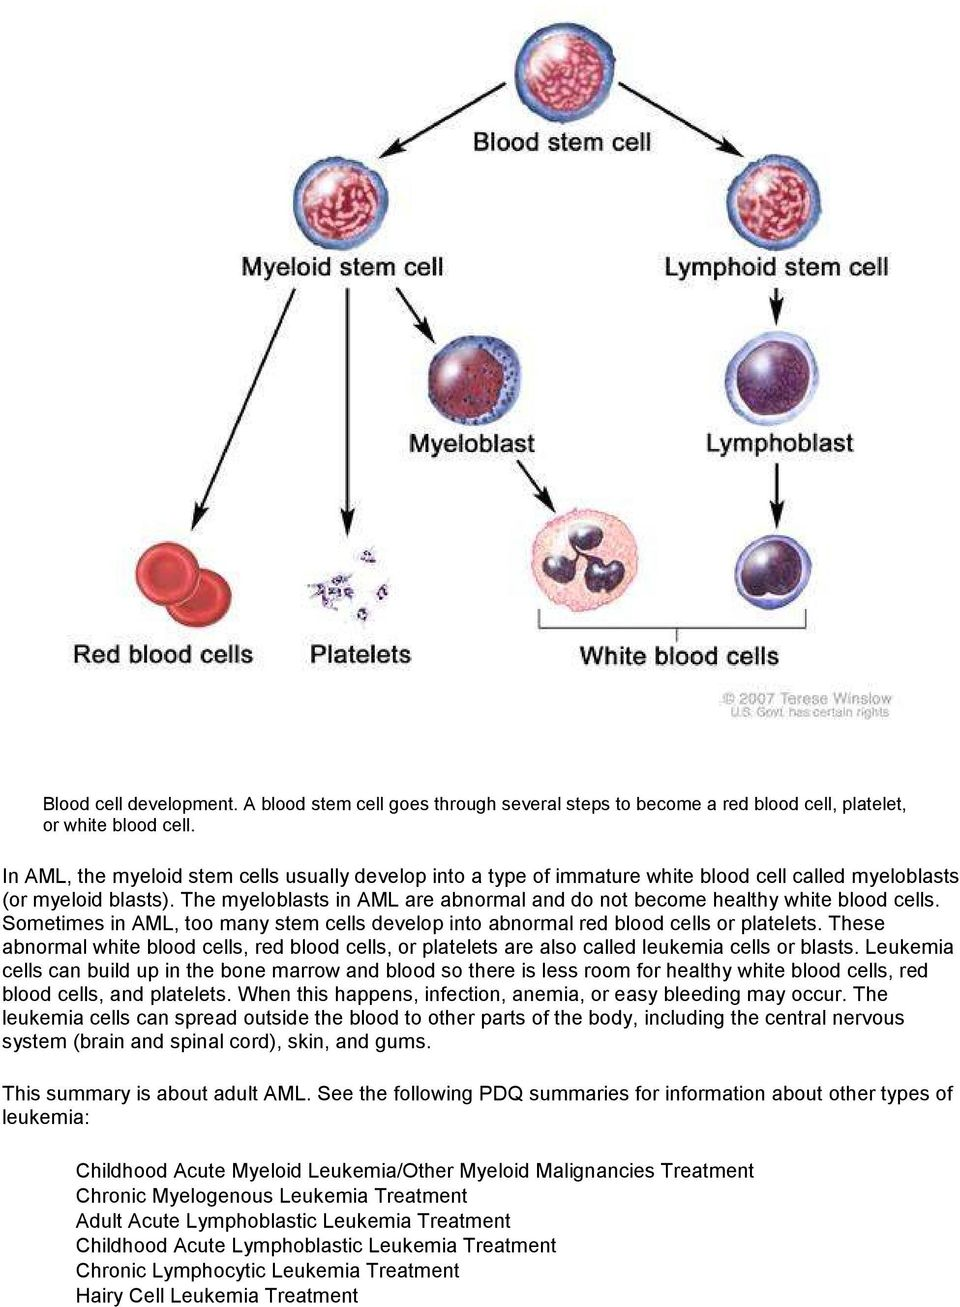 The myeloblasts in AML are abnormal and do not become healthy white blood cells. Sometimes in AML, too many stem cells develop into abnormal red blood cells or platelets.